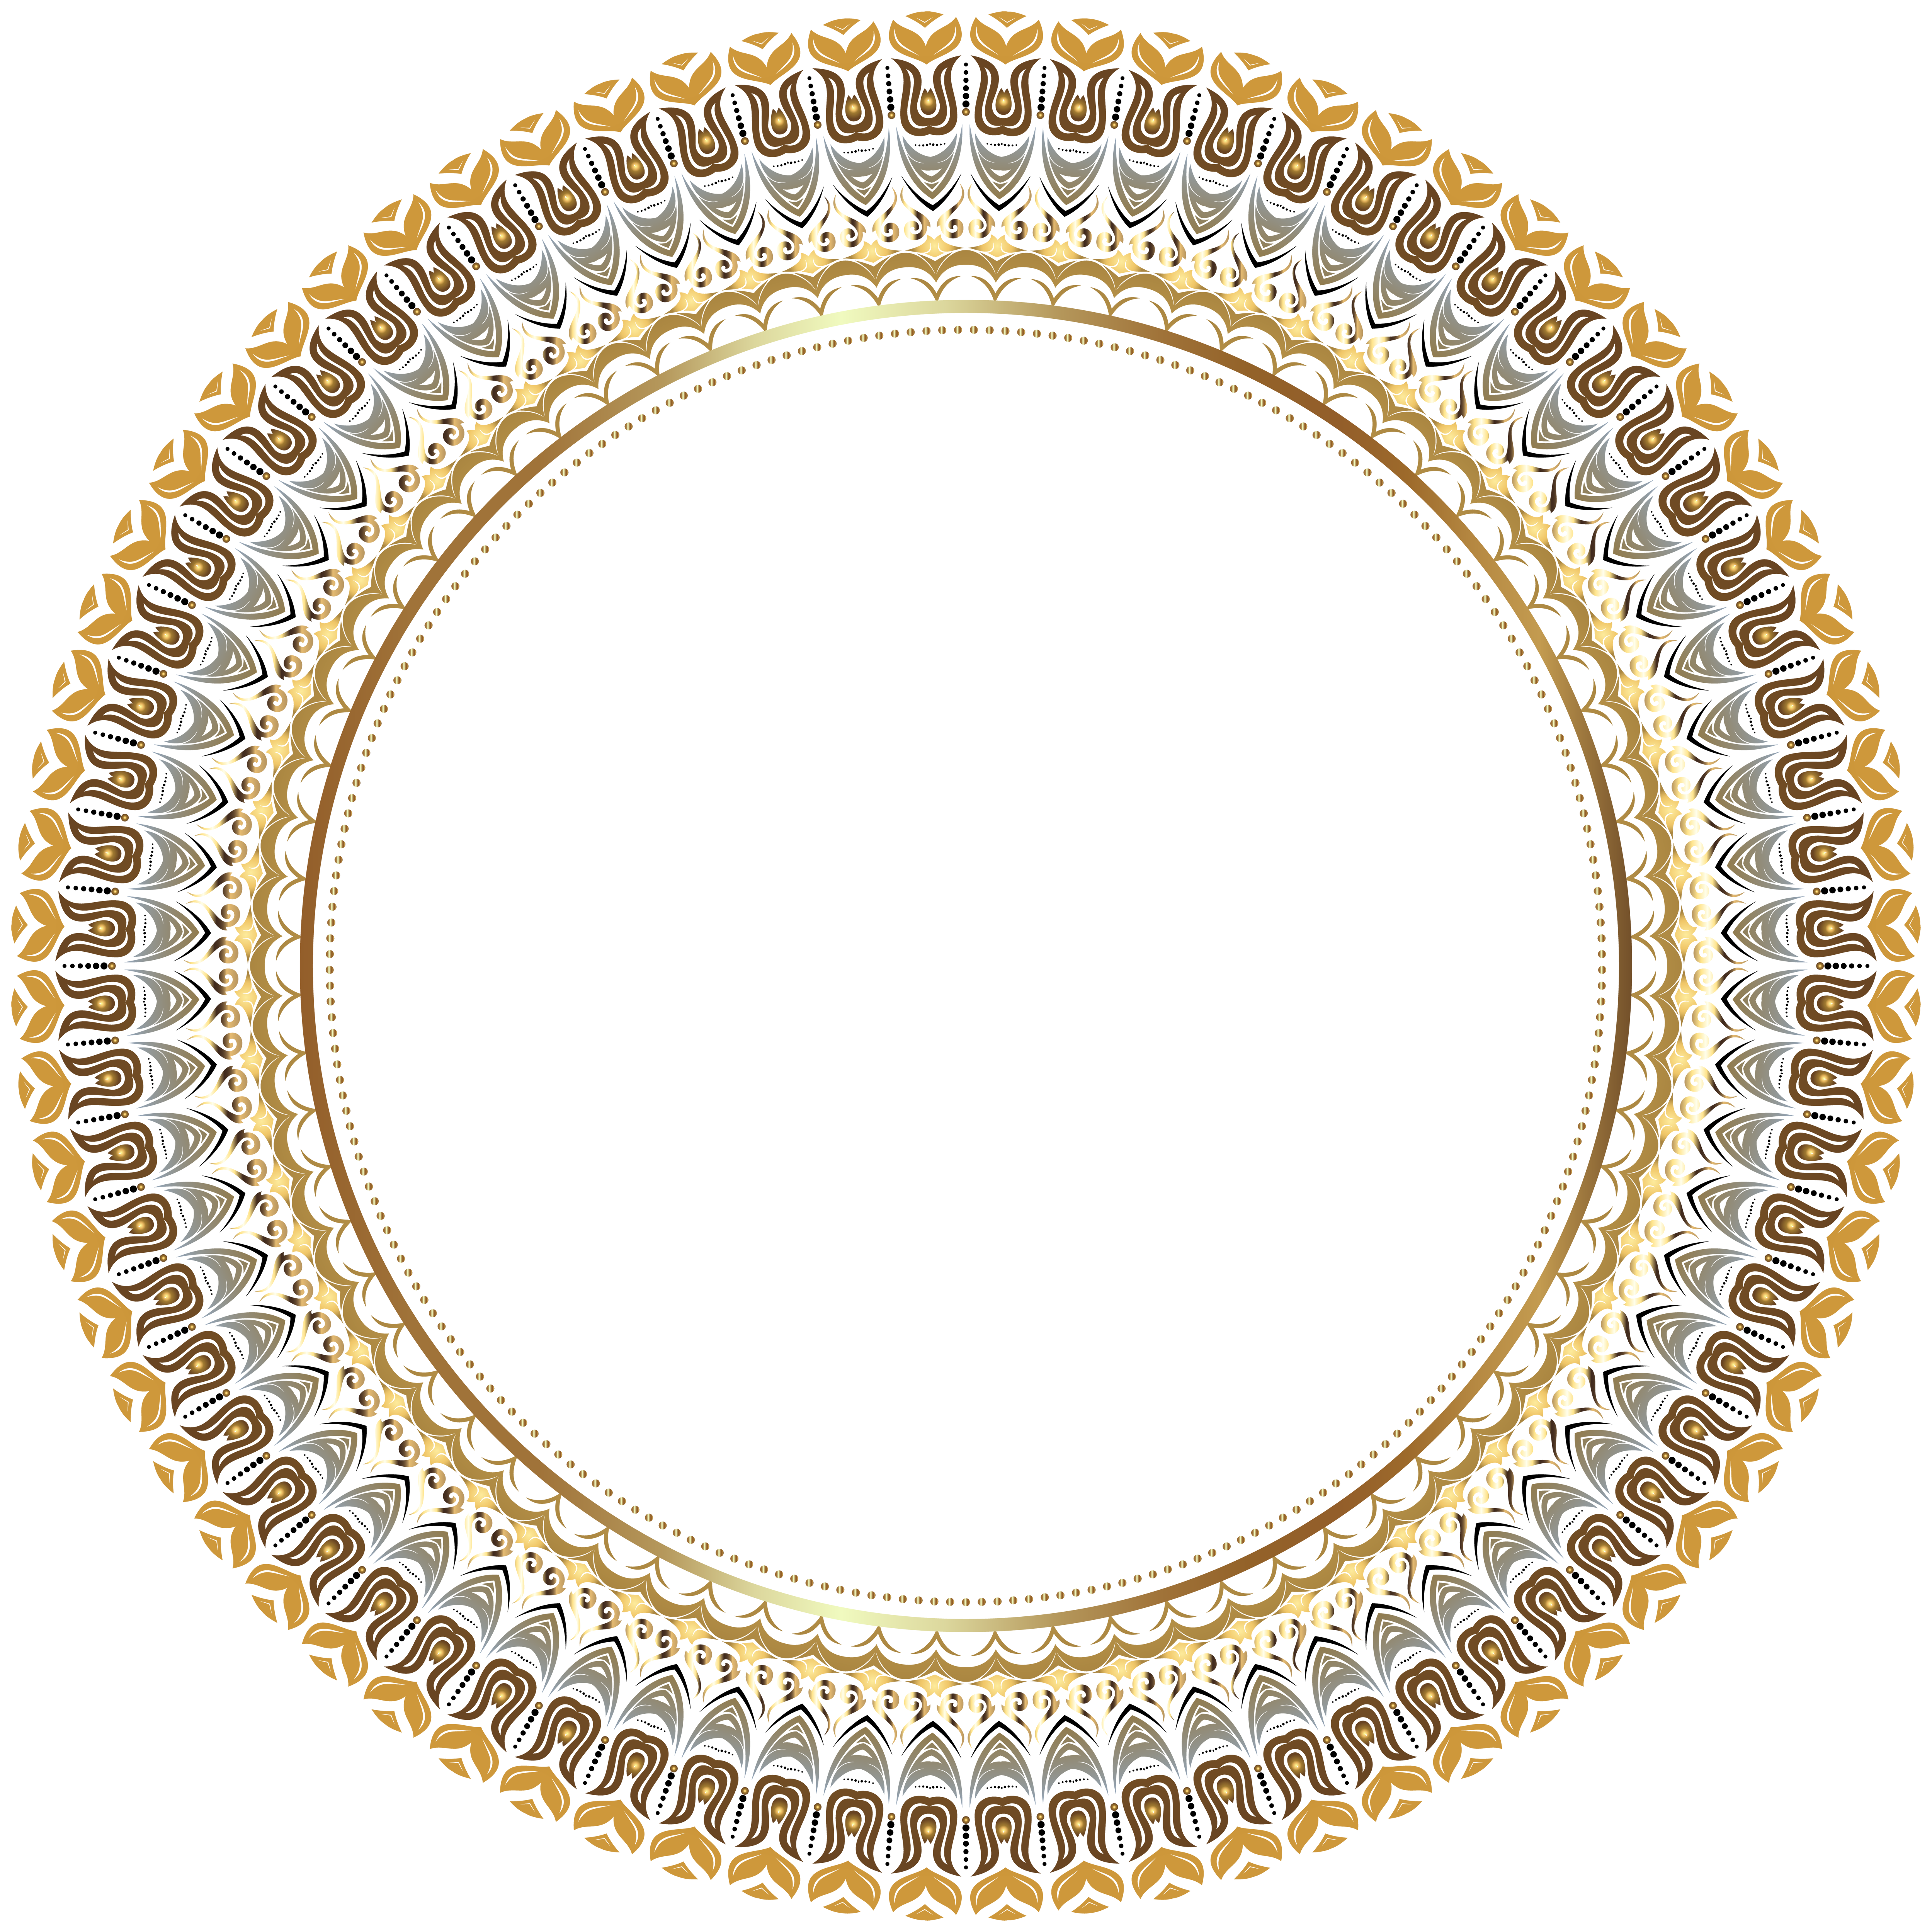 Round Border Frame Transparent Png Clip Art Image Gallery Yopriceville High Quality Images And Transparent Png Free Cli Bingkai Bingkai Foto Desain Grafis